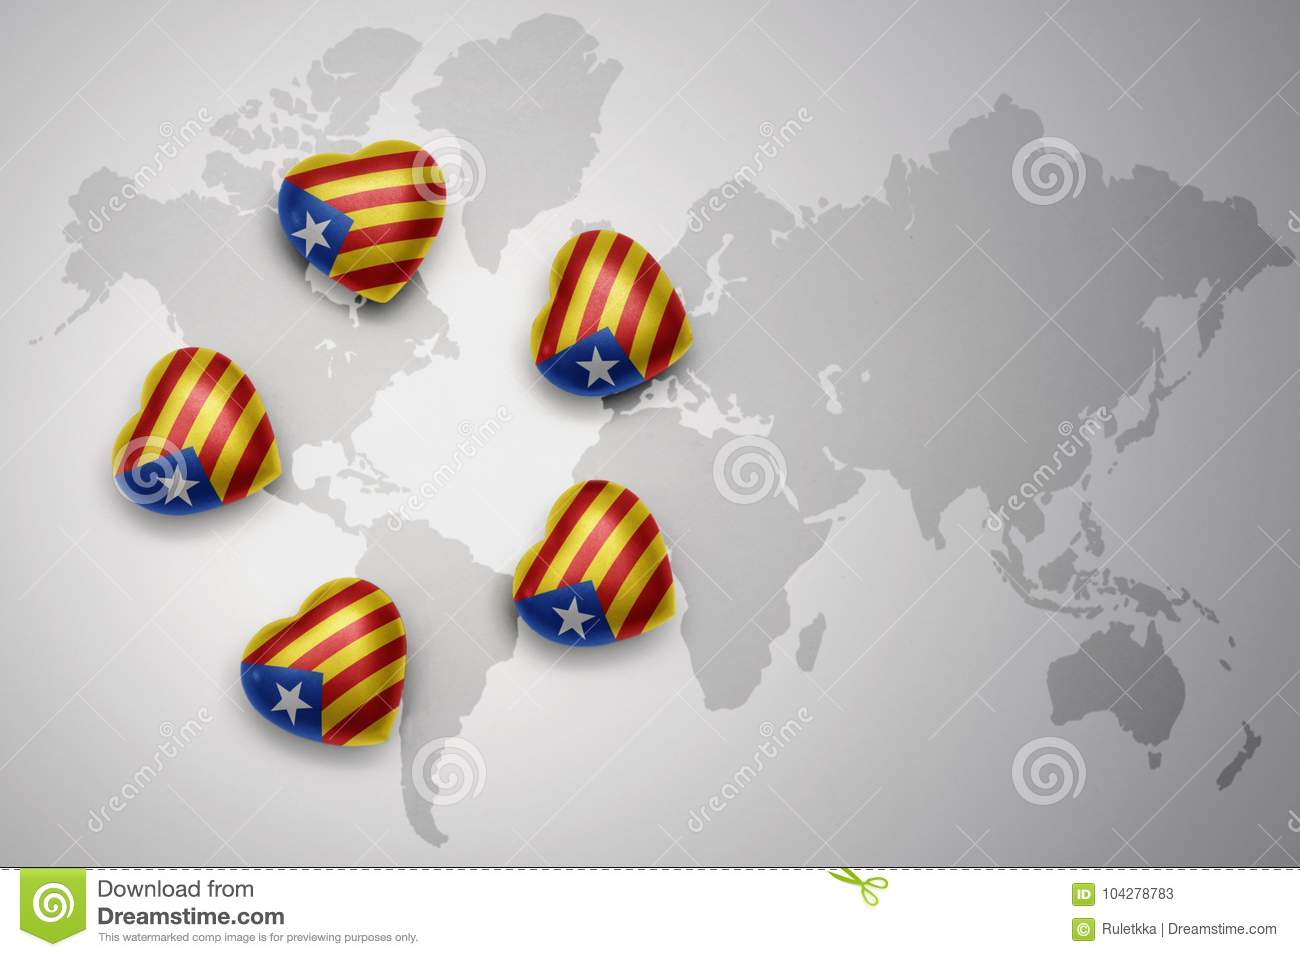 five hearts with national flag of catalonia on a world map background.